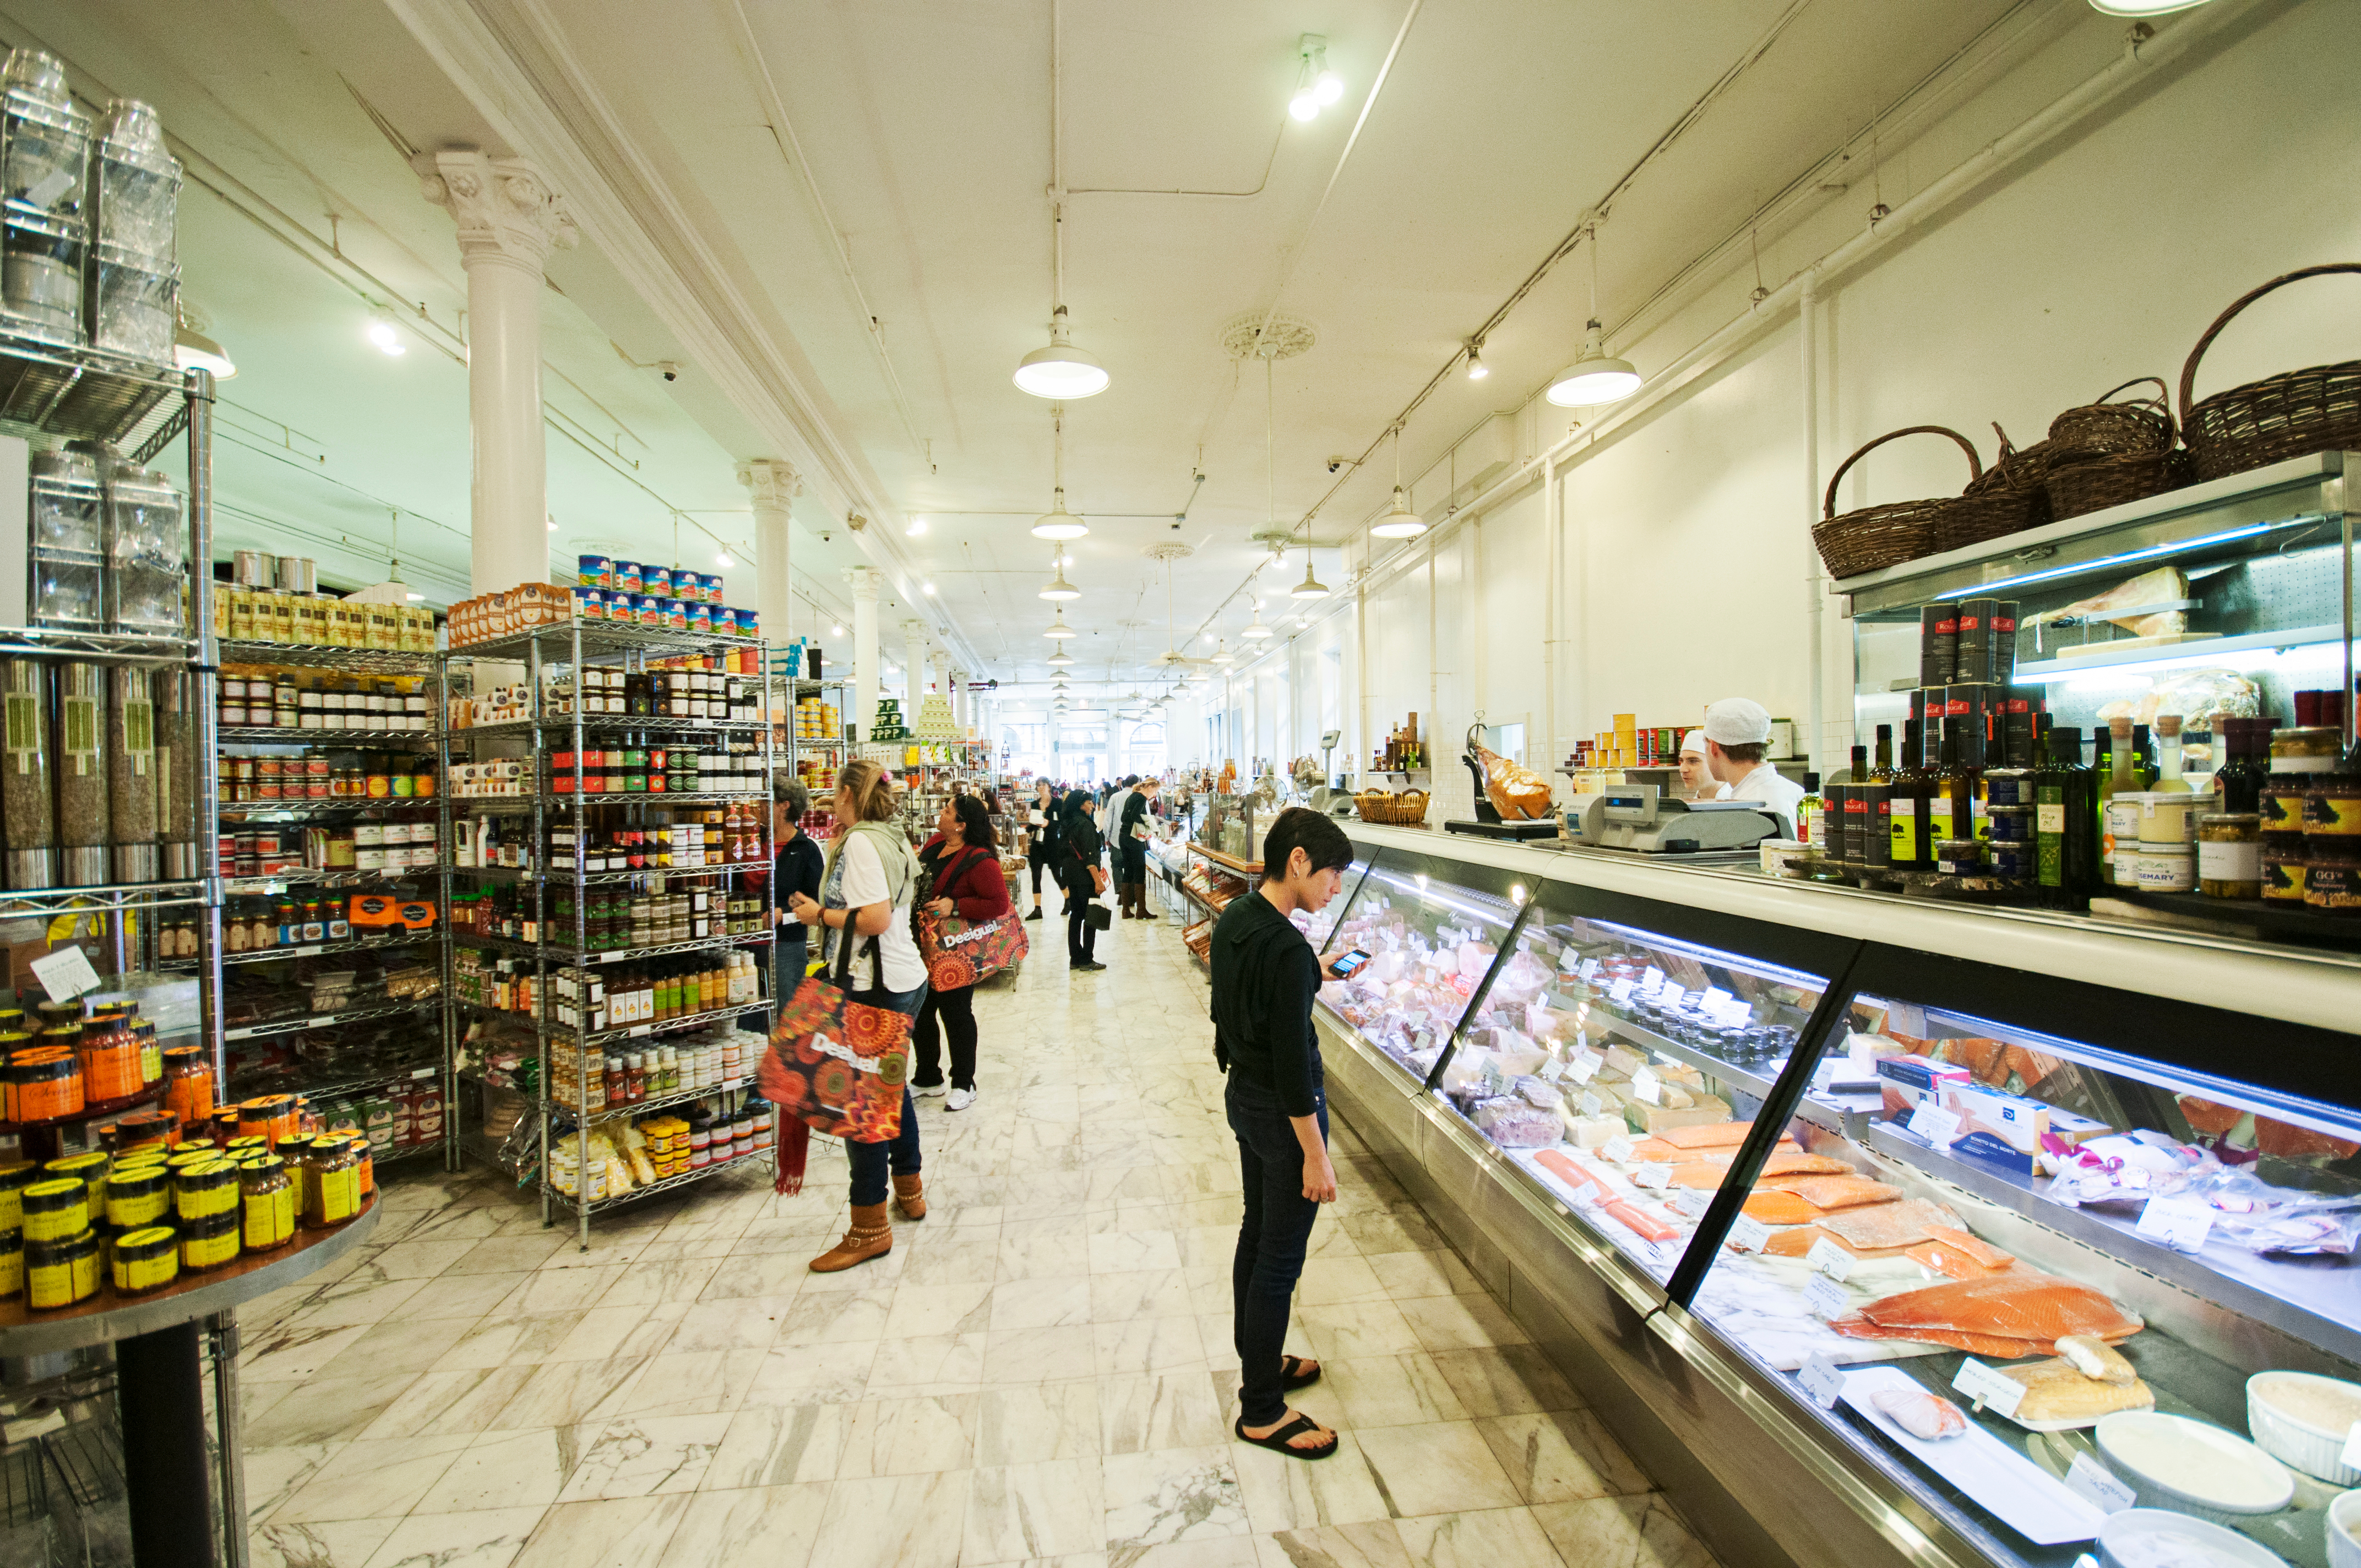 People standing in a grocery aisle, between shelves of condiments and a glass case full of fish.